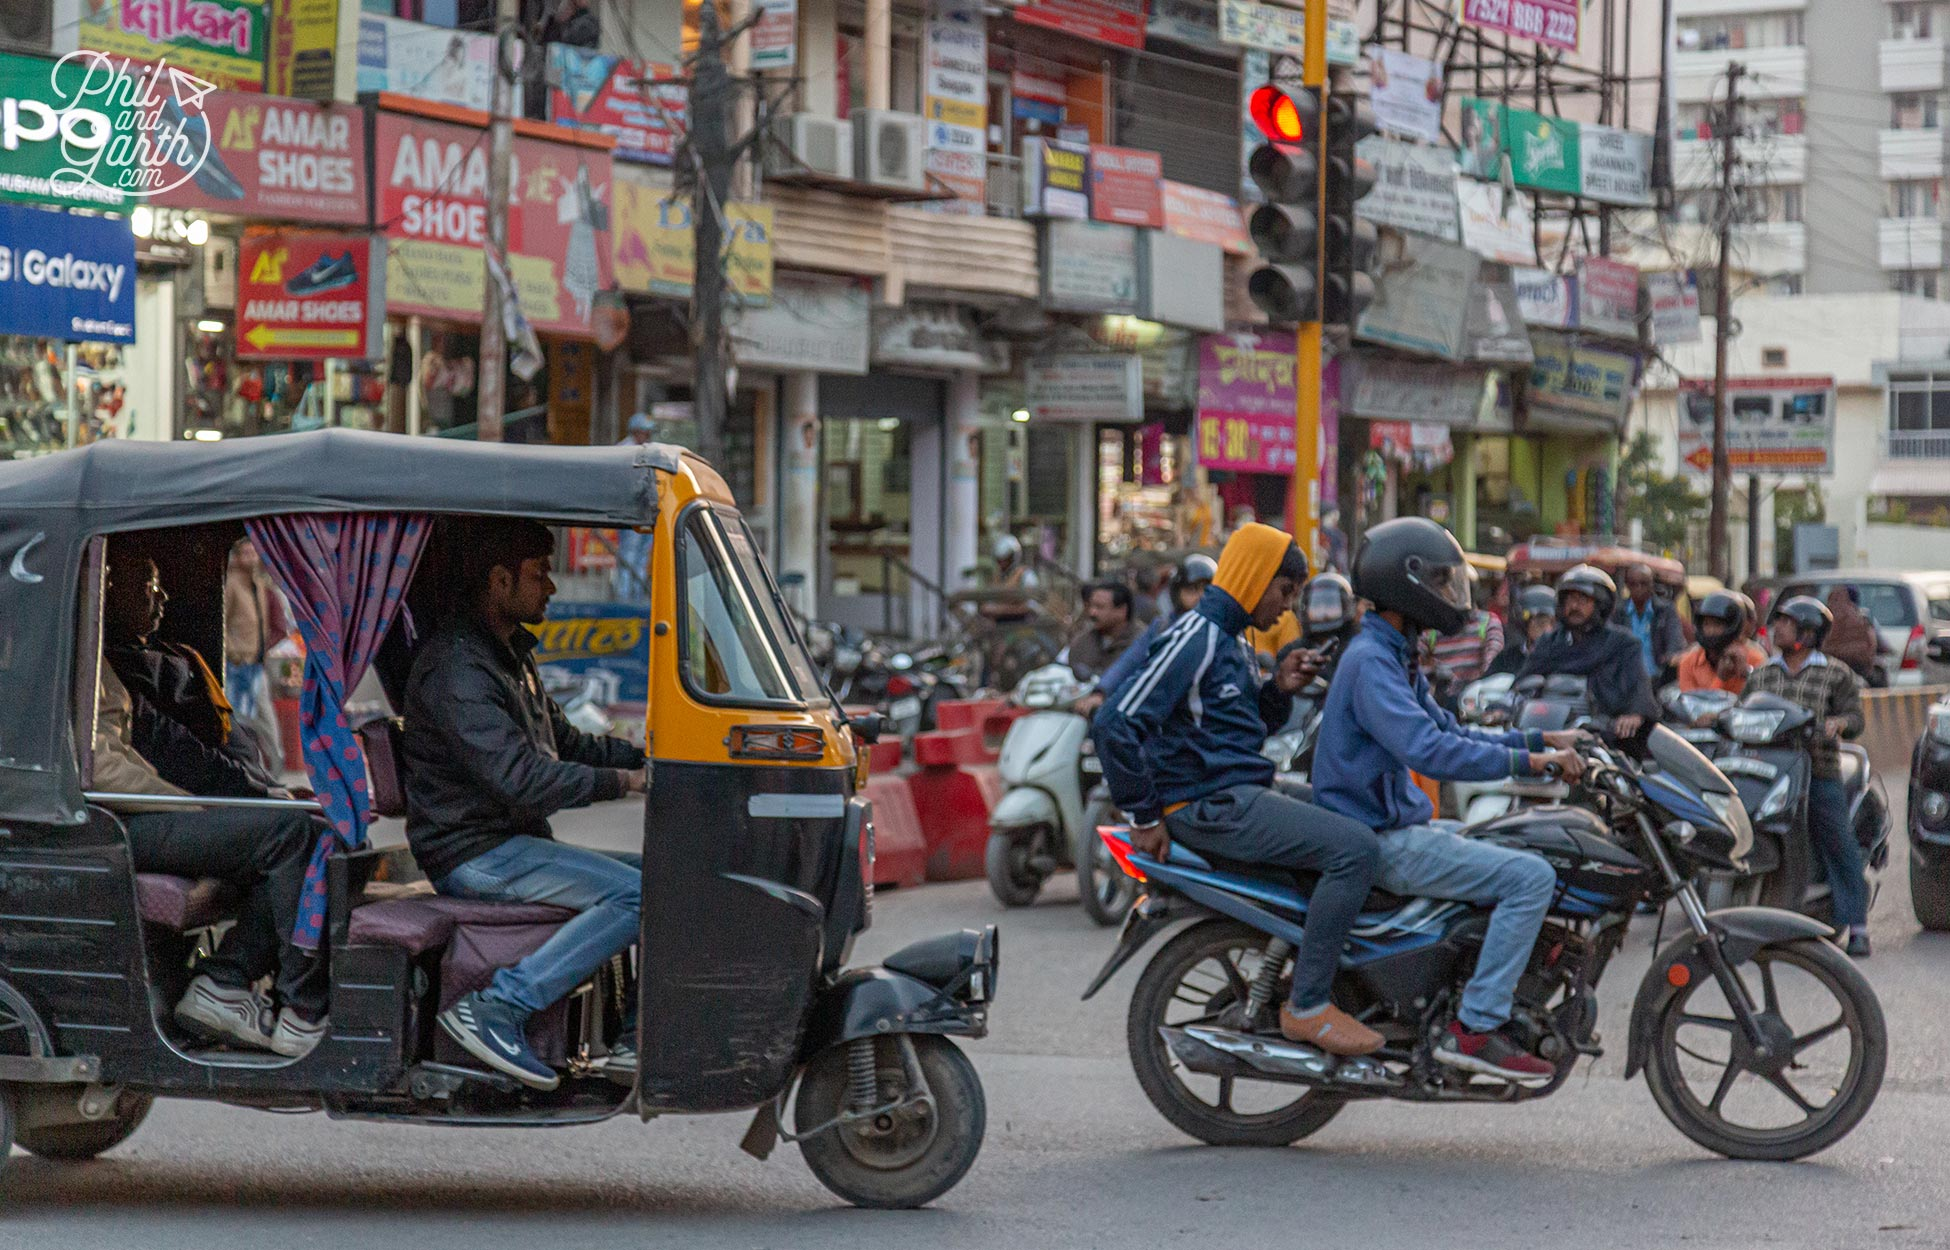 The traffic fumes and pollution were the worst we experienced in India